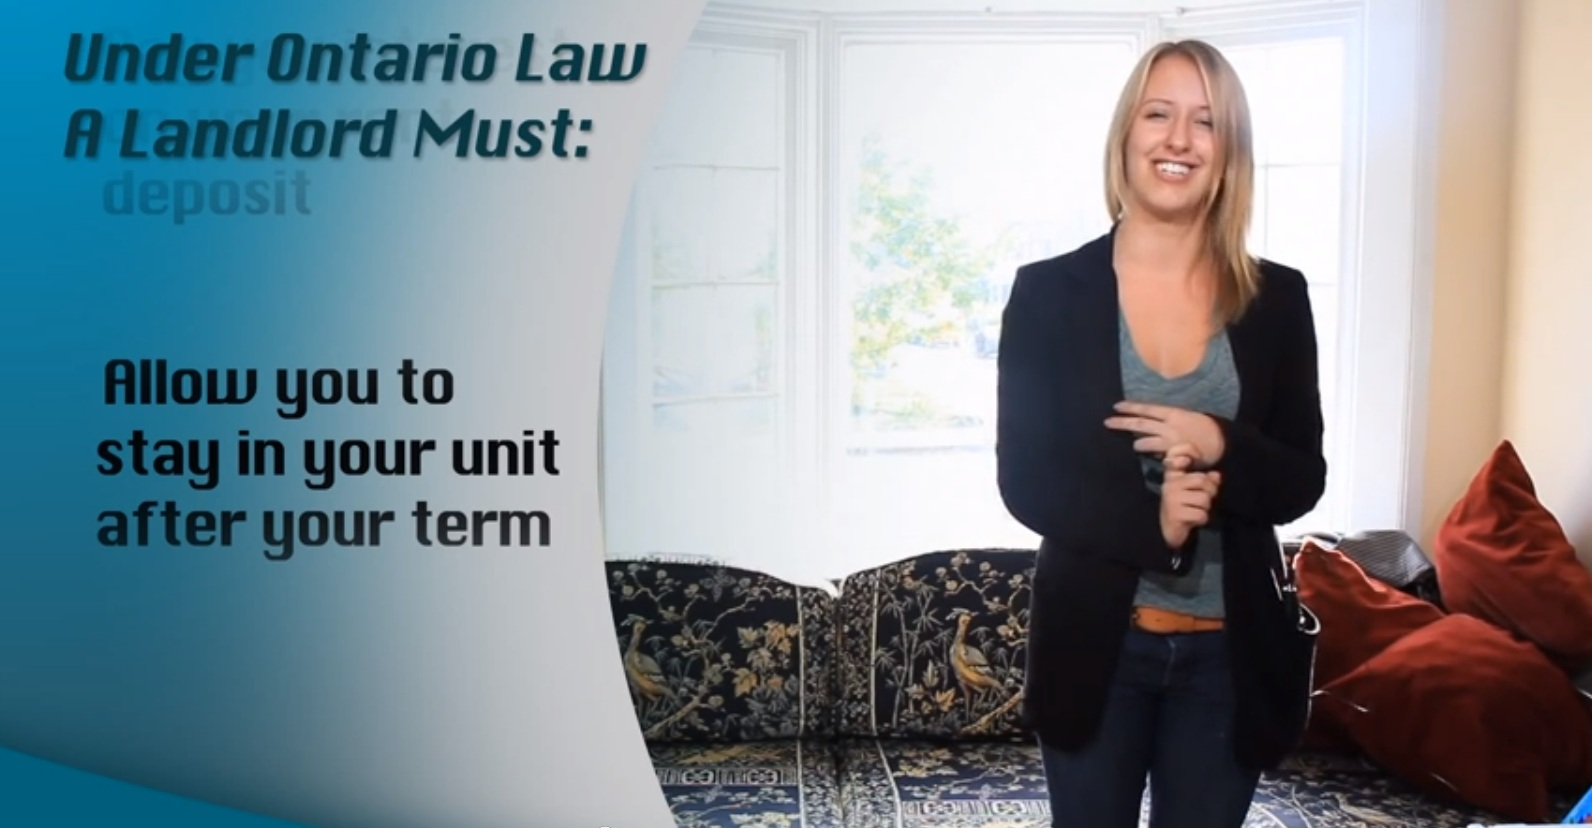 Video Screenshot - Unlawful Clauses